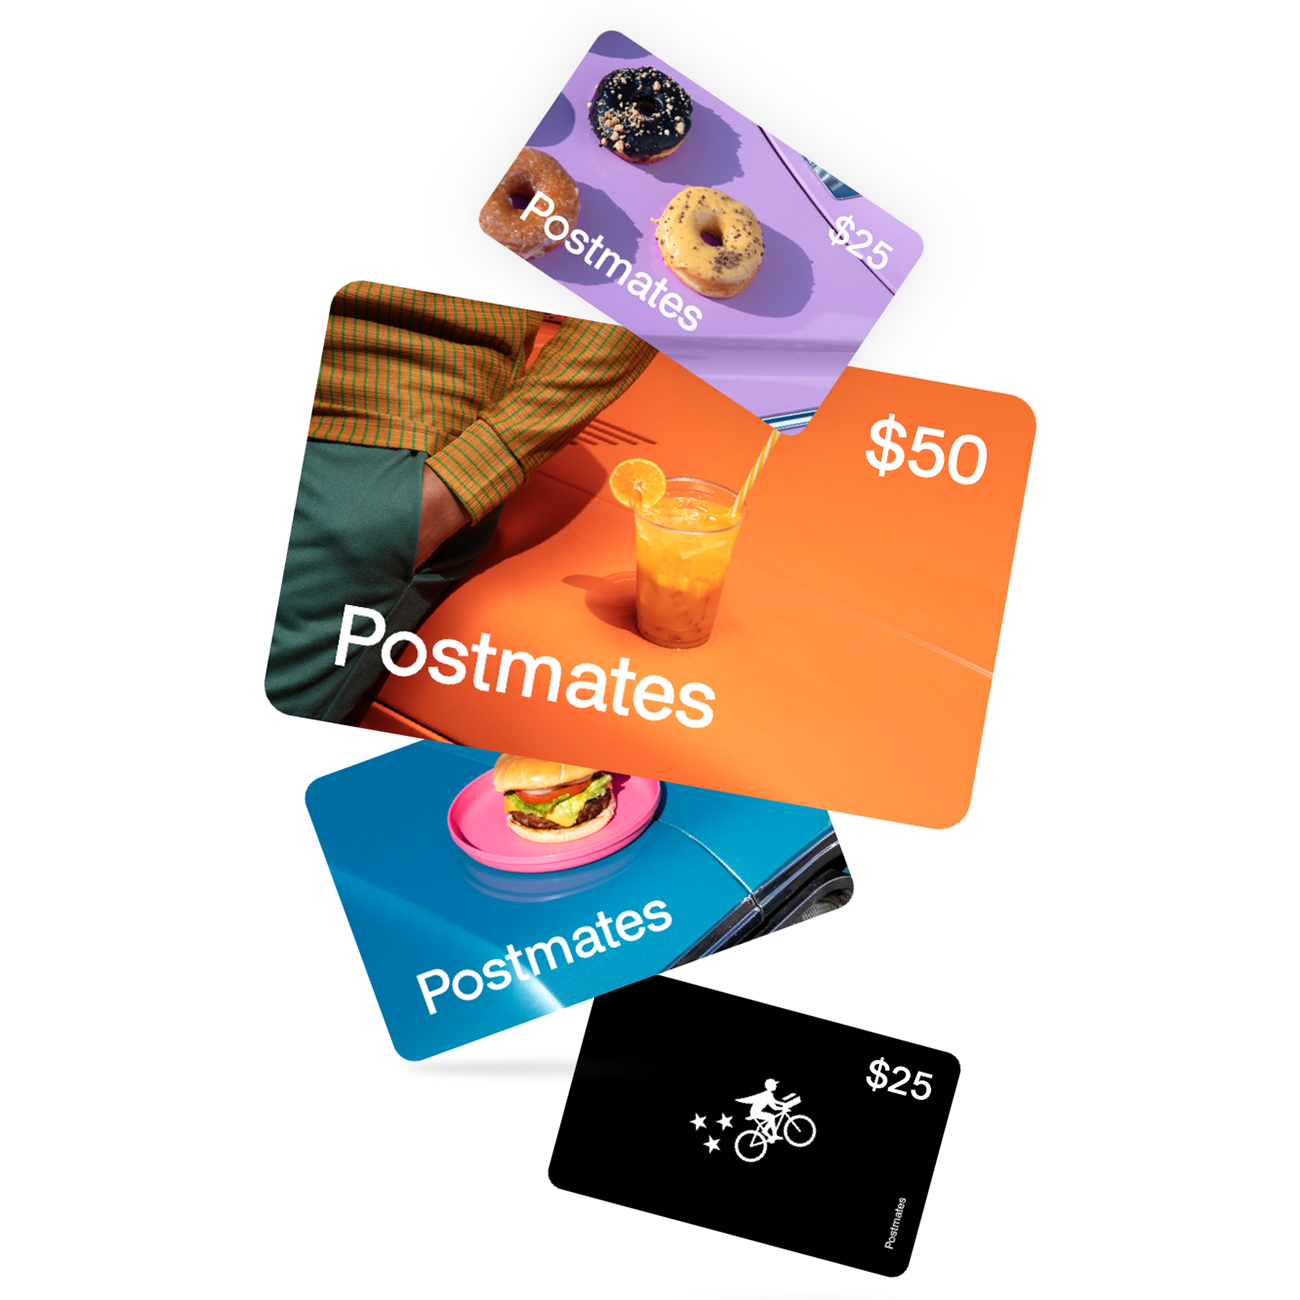 Best Christmas gifts 2019 - Postmates Gift Card